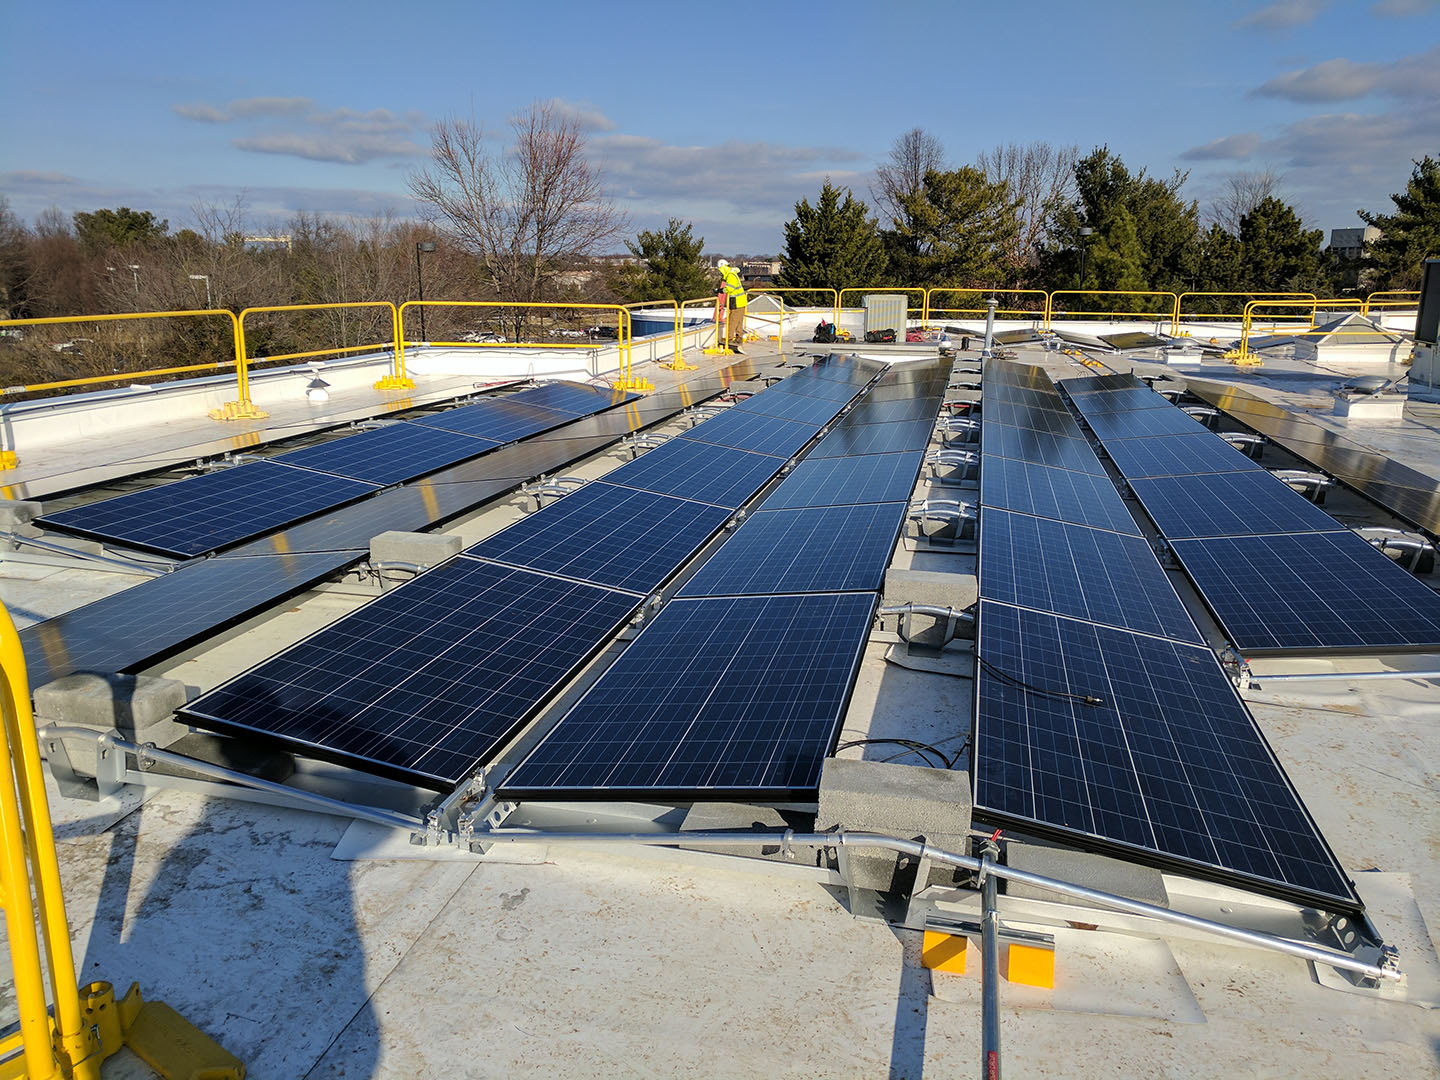 Kidstop Childcare Center solar panels on roof